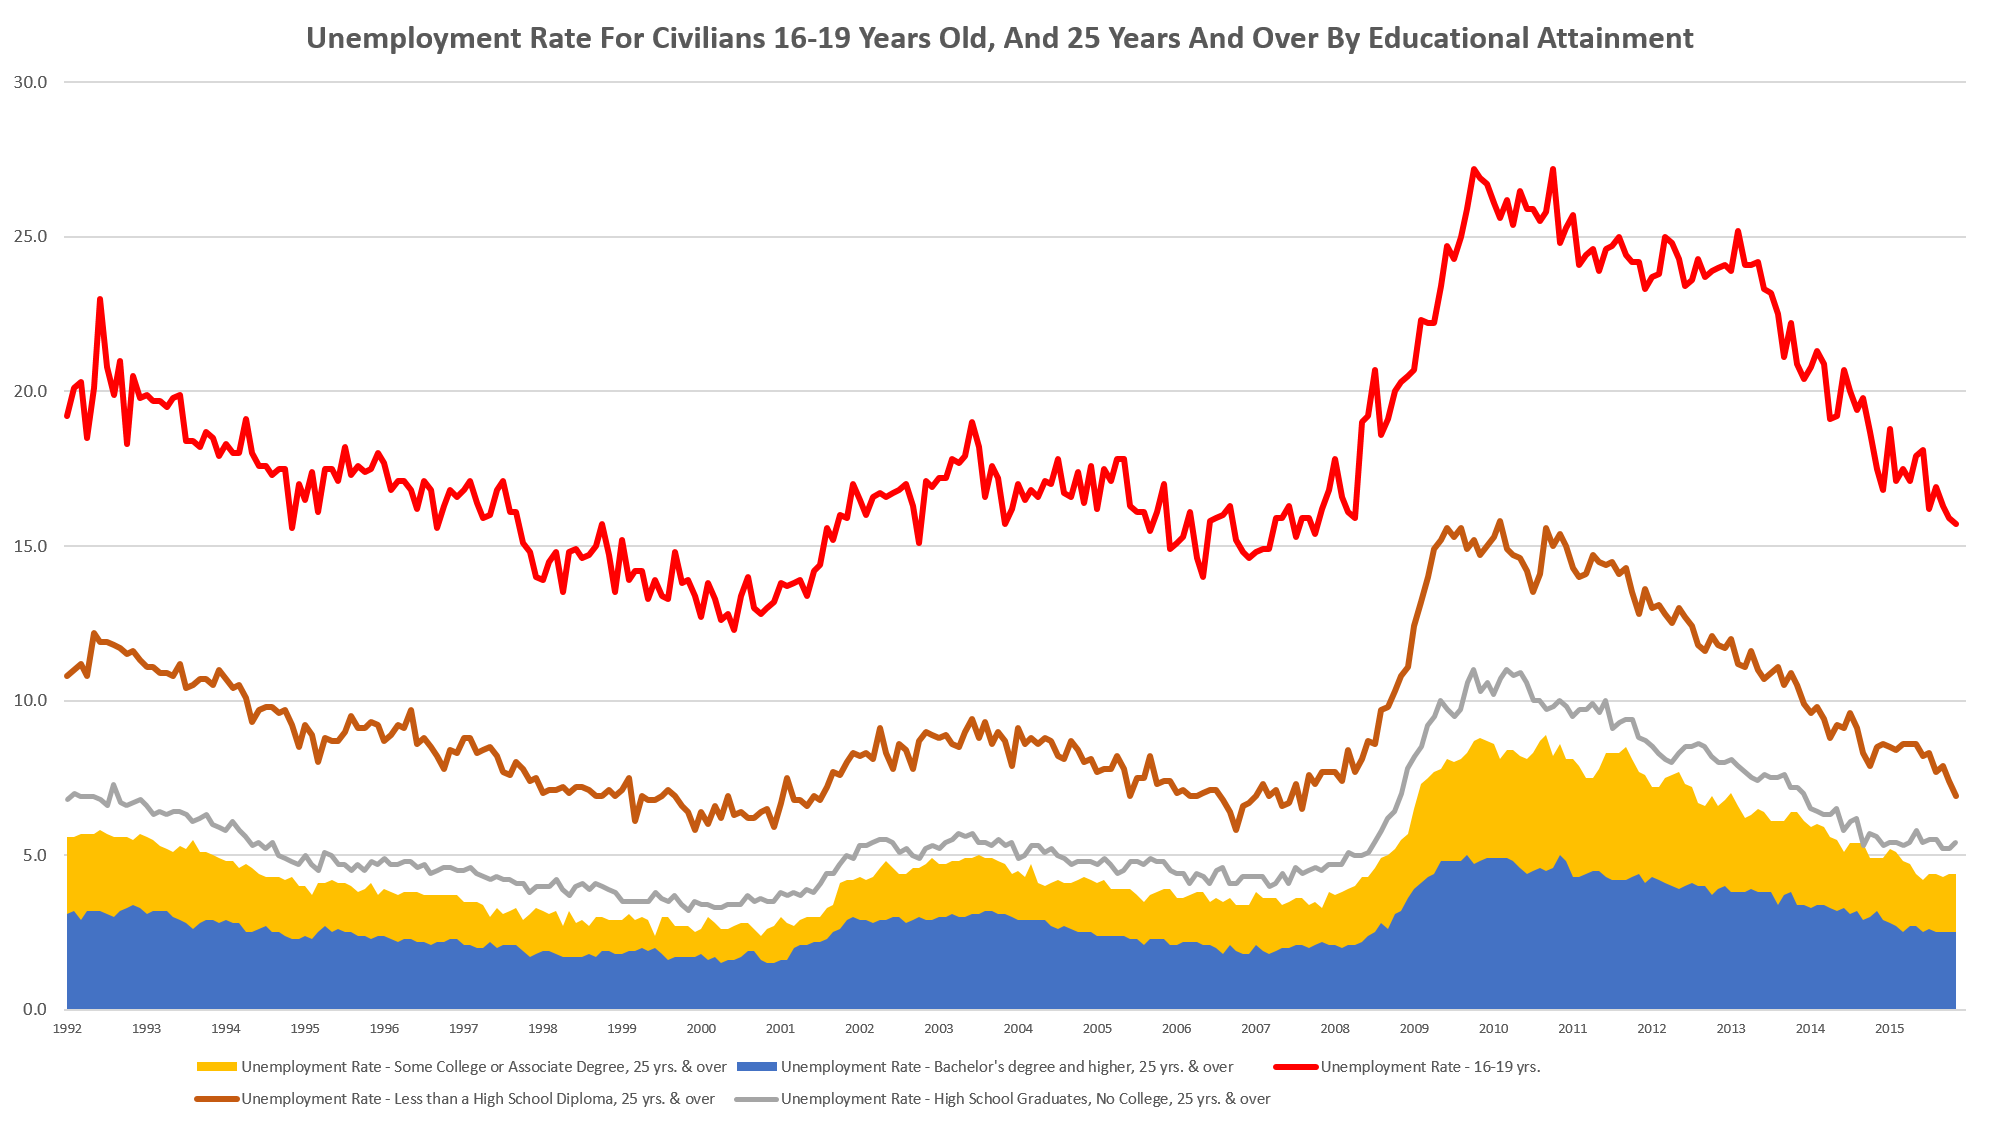 Unemployment rate for civilians by 16-19 years old, and 25 years and over by educational attainment